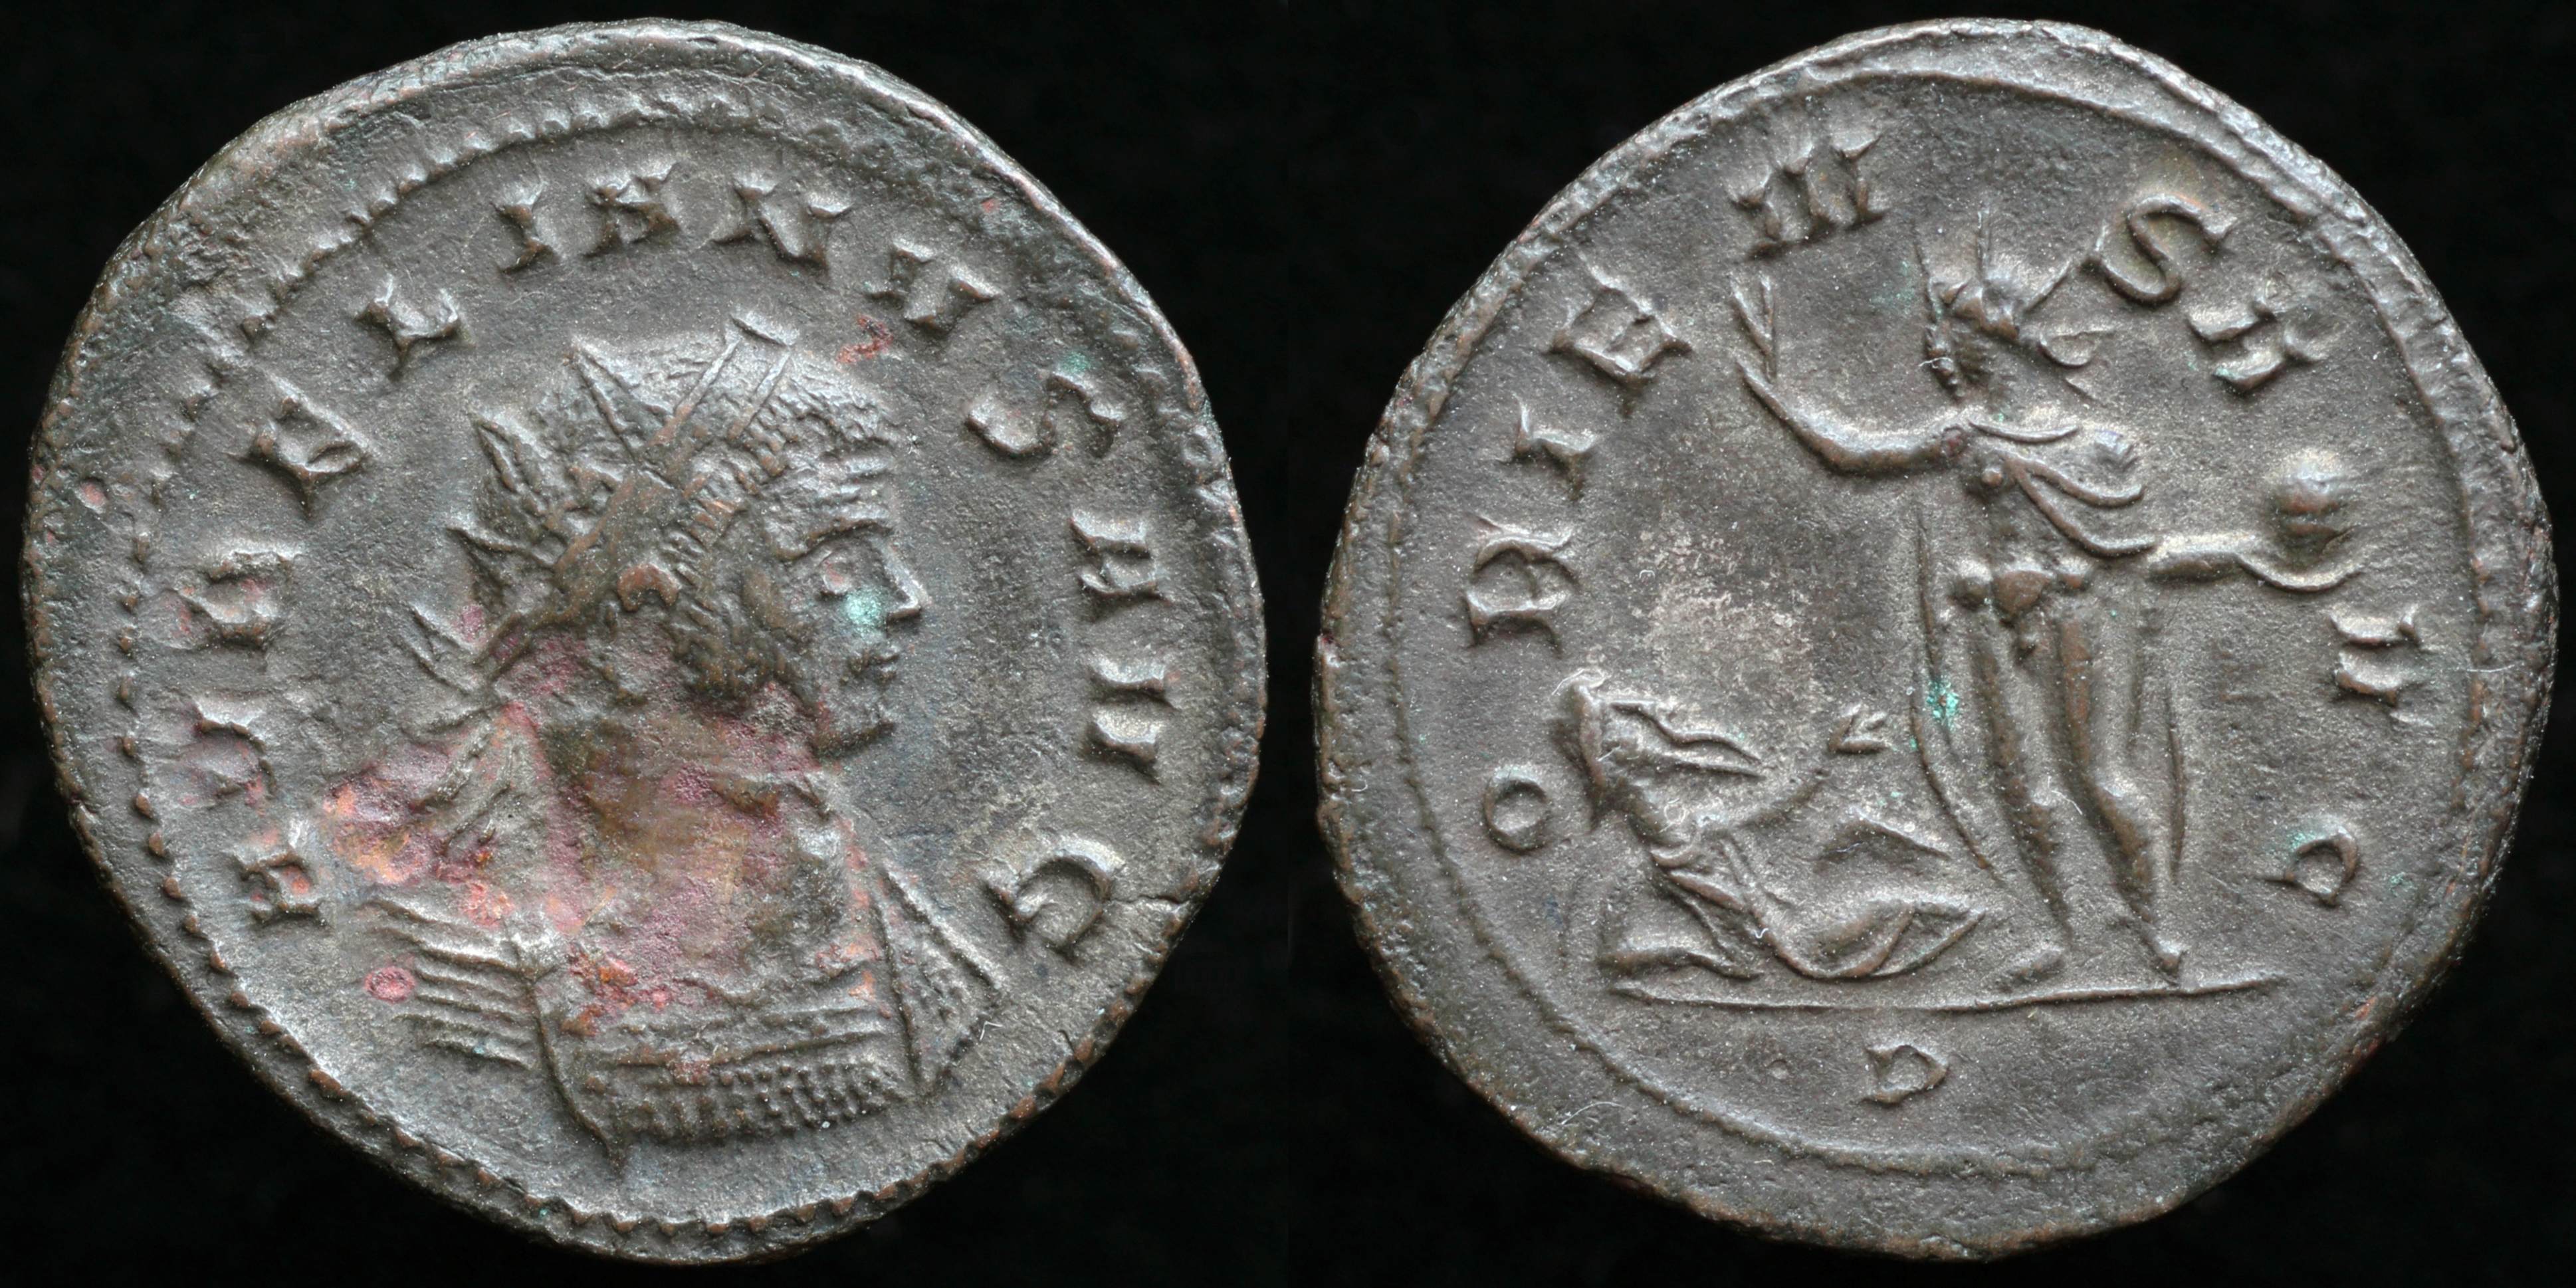 /Files/Images/Coinsite/CoinDB/Aurelian_Rome.jpg